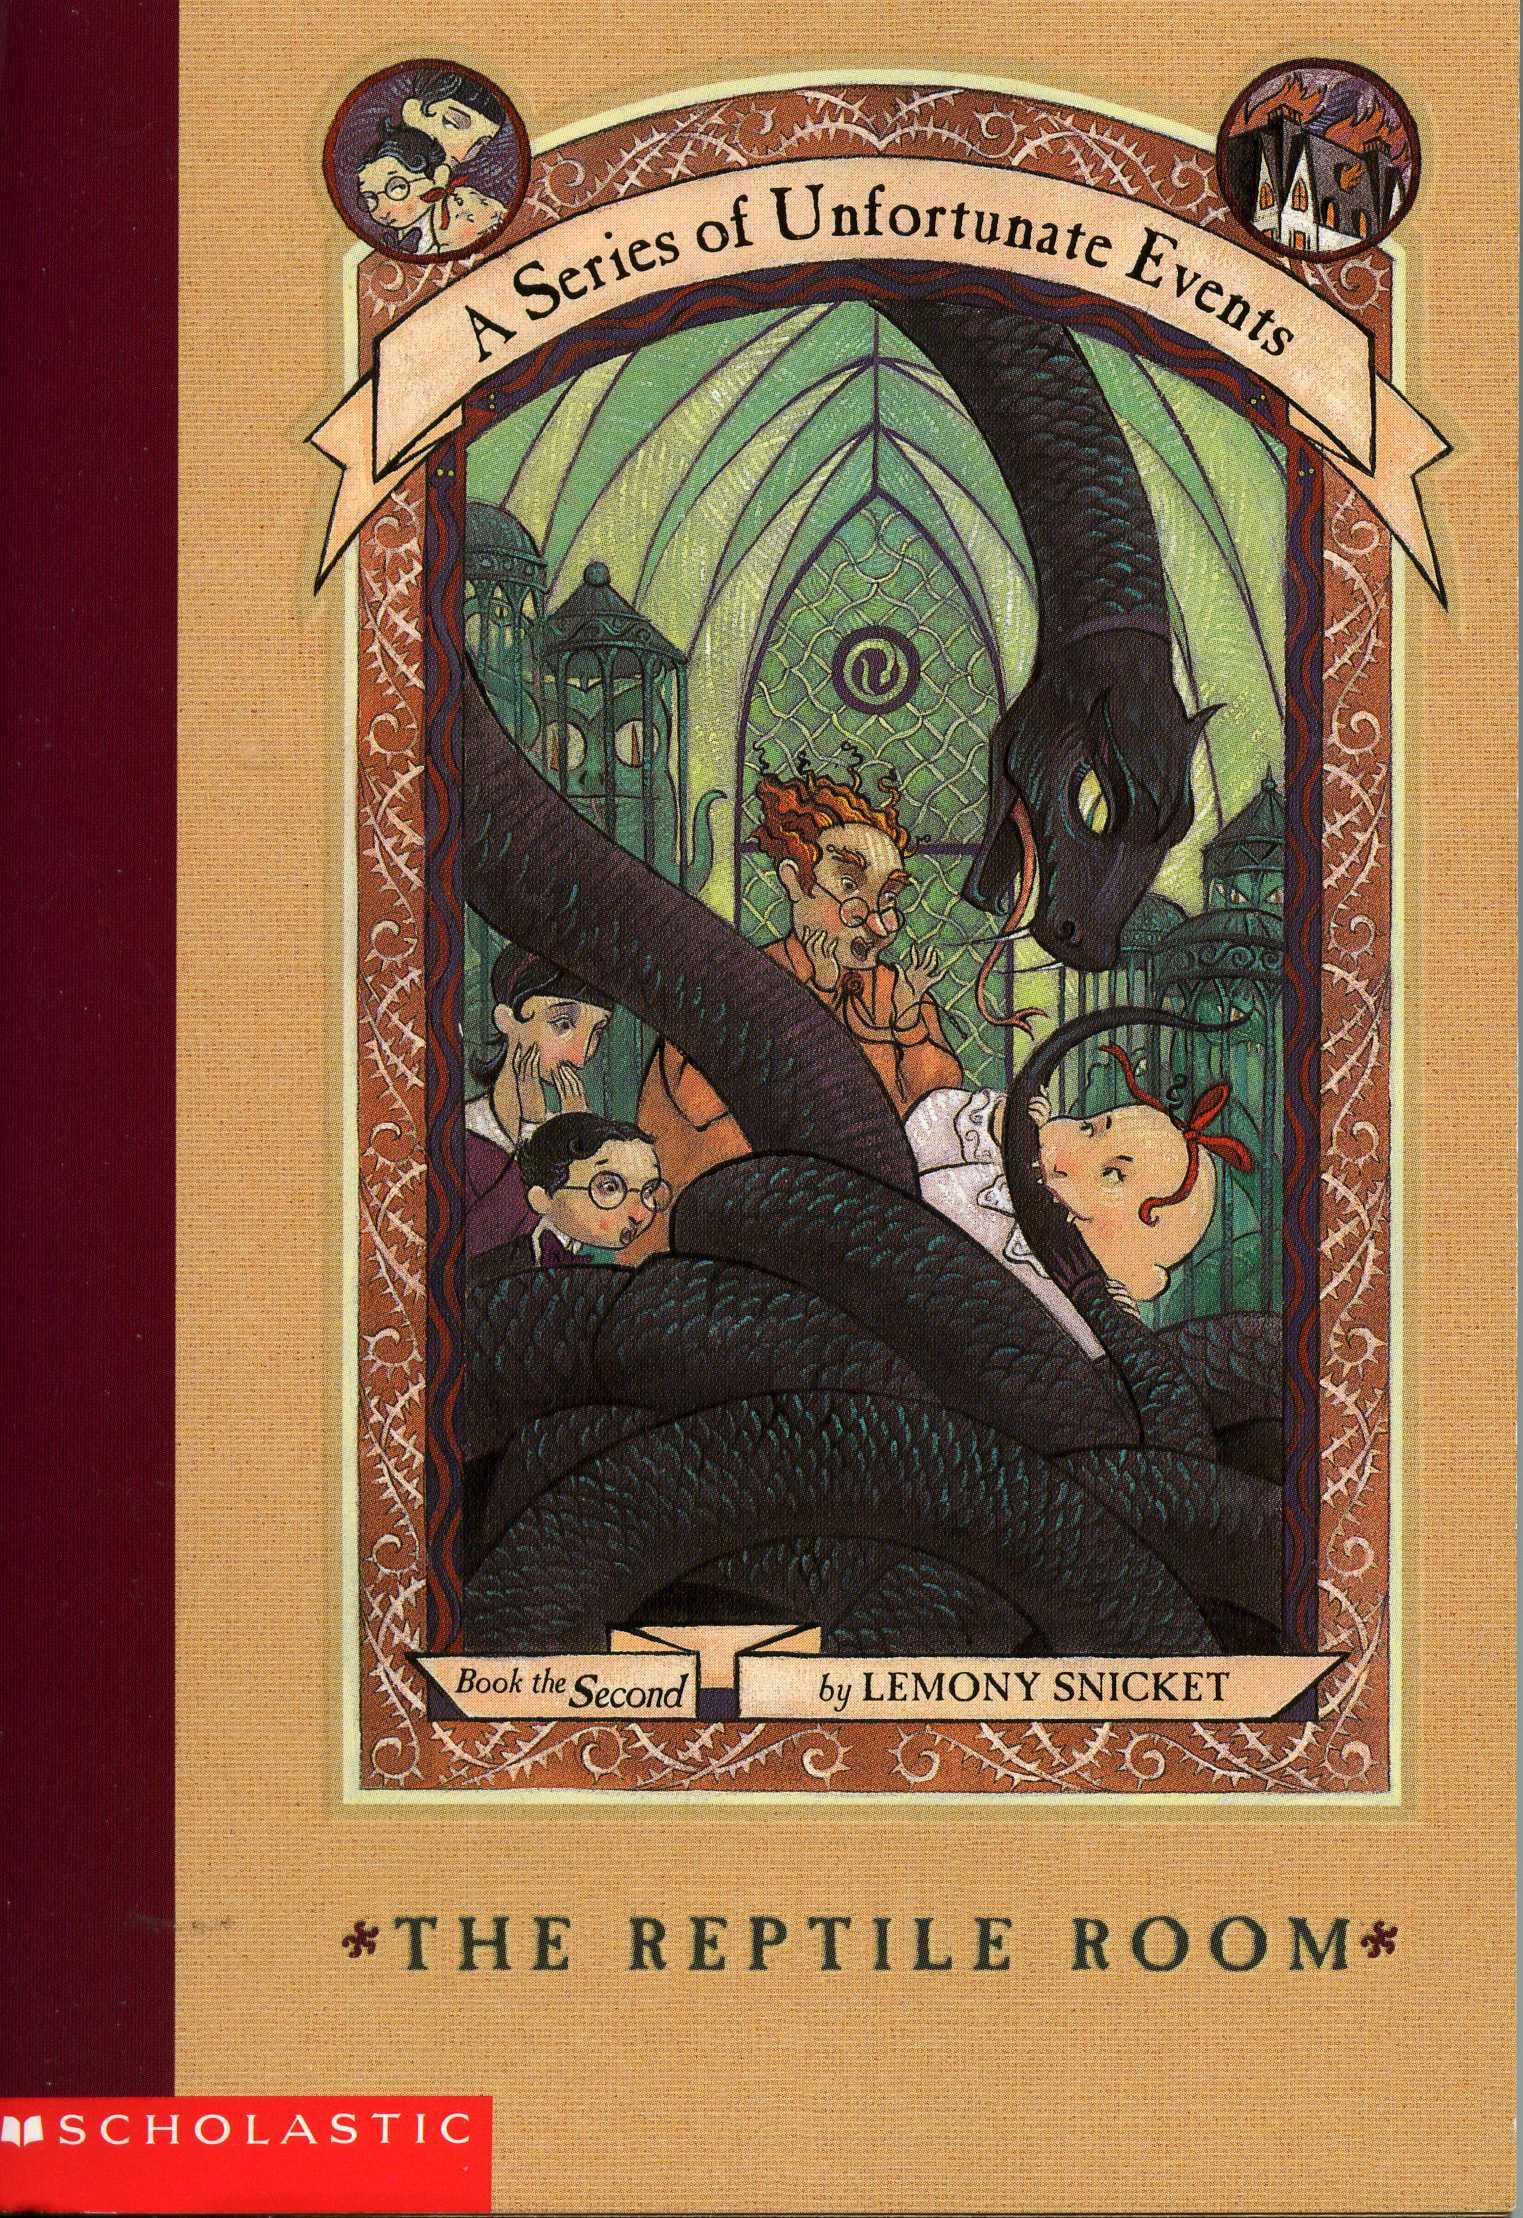 The Reptile Room - Book 2 of A Series of Unfortunate Events